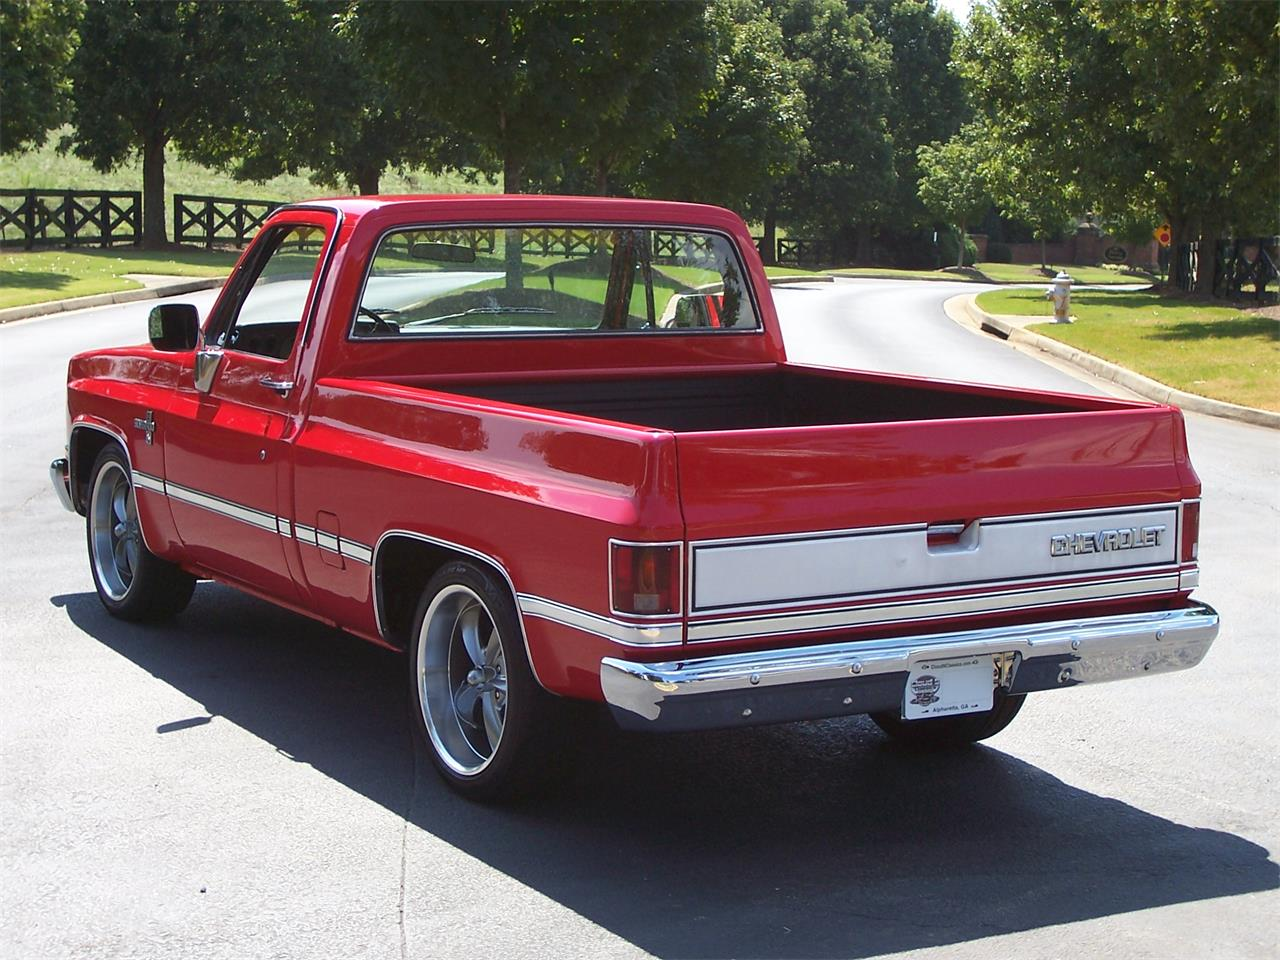 1985 Chevrolet C/K 10 for sale in Alpharetta, GA – photo 86